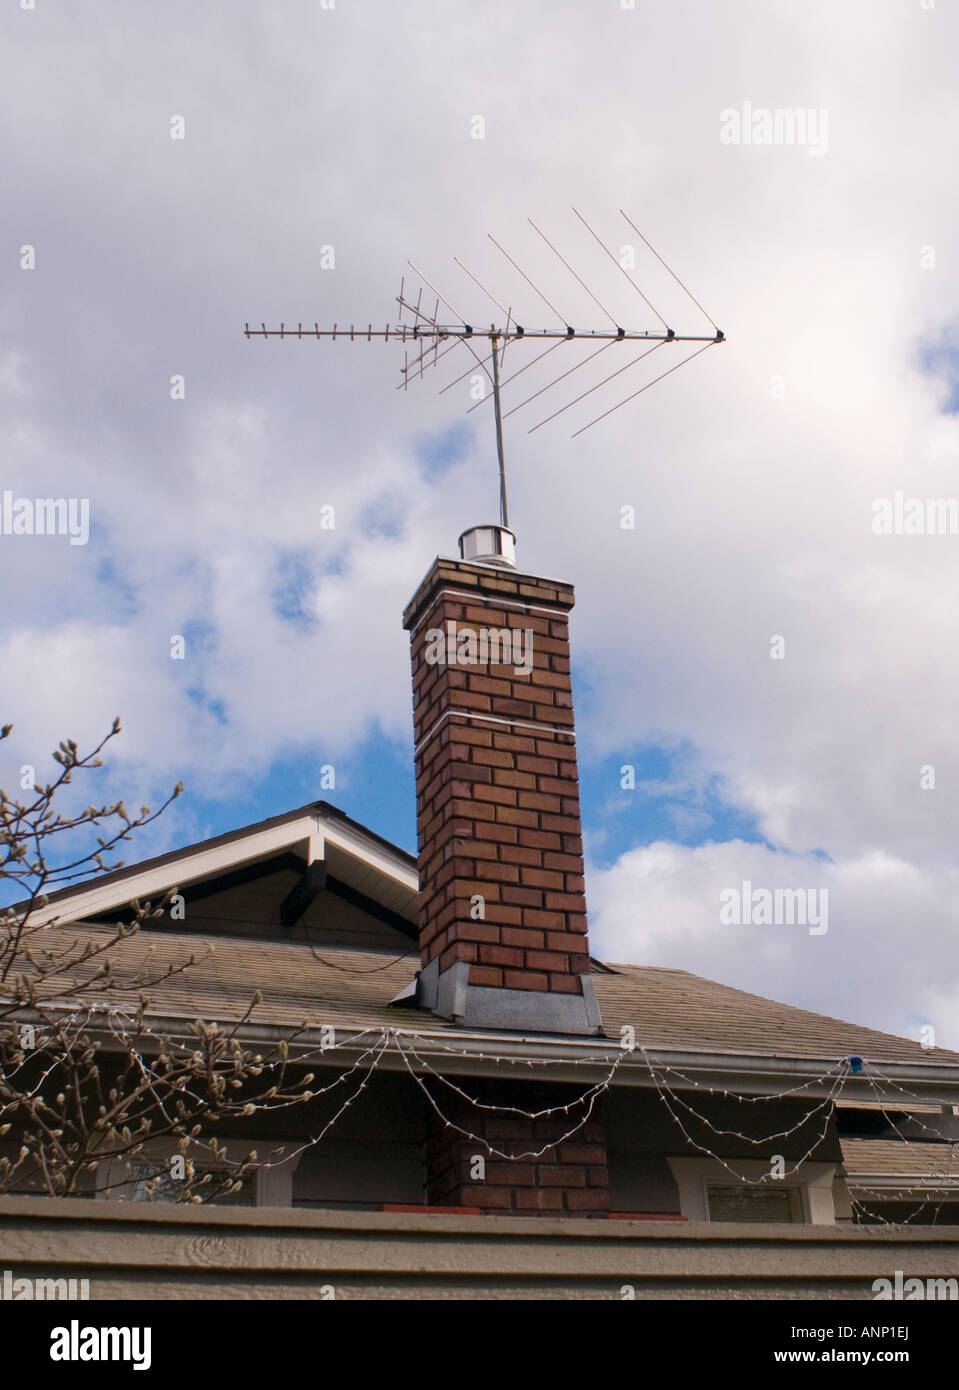 Analog television antenna on a chimney on a house in the North End of Tacoma, WA, USA. - Stock Image